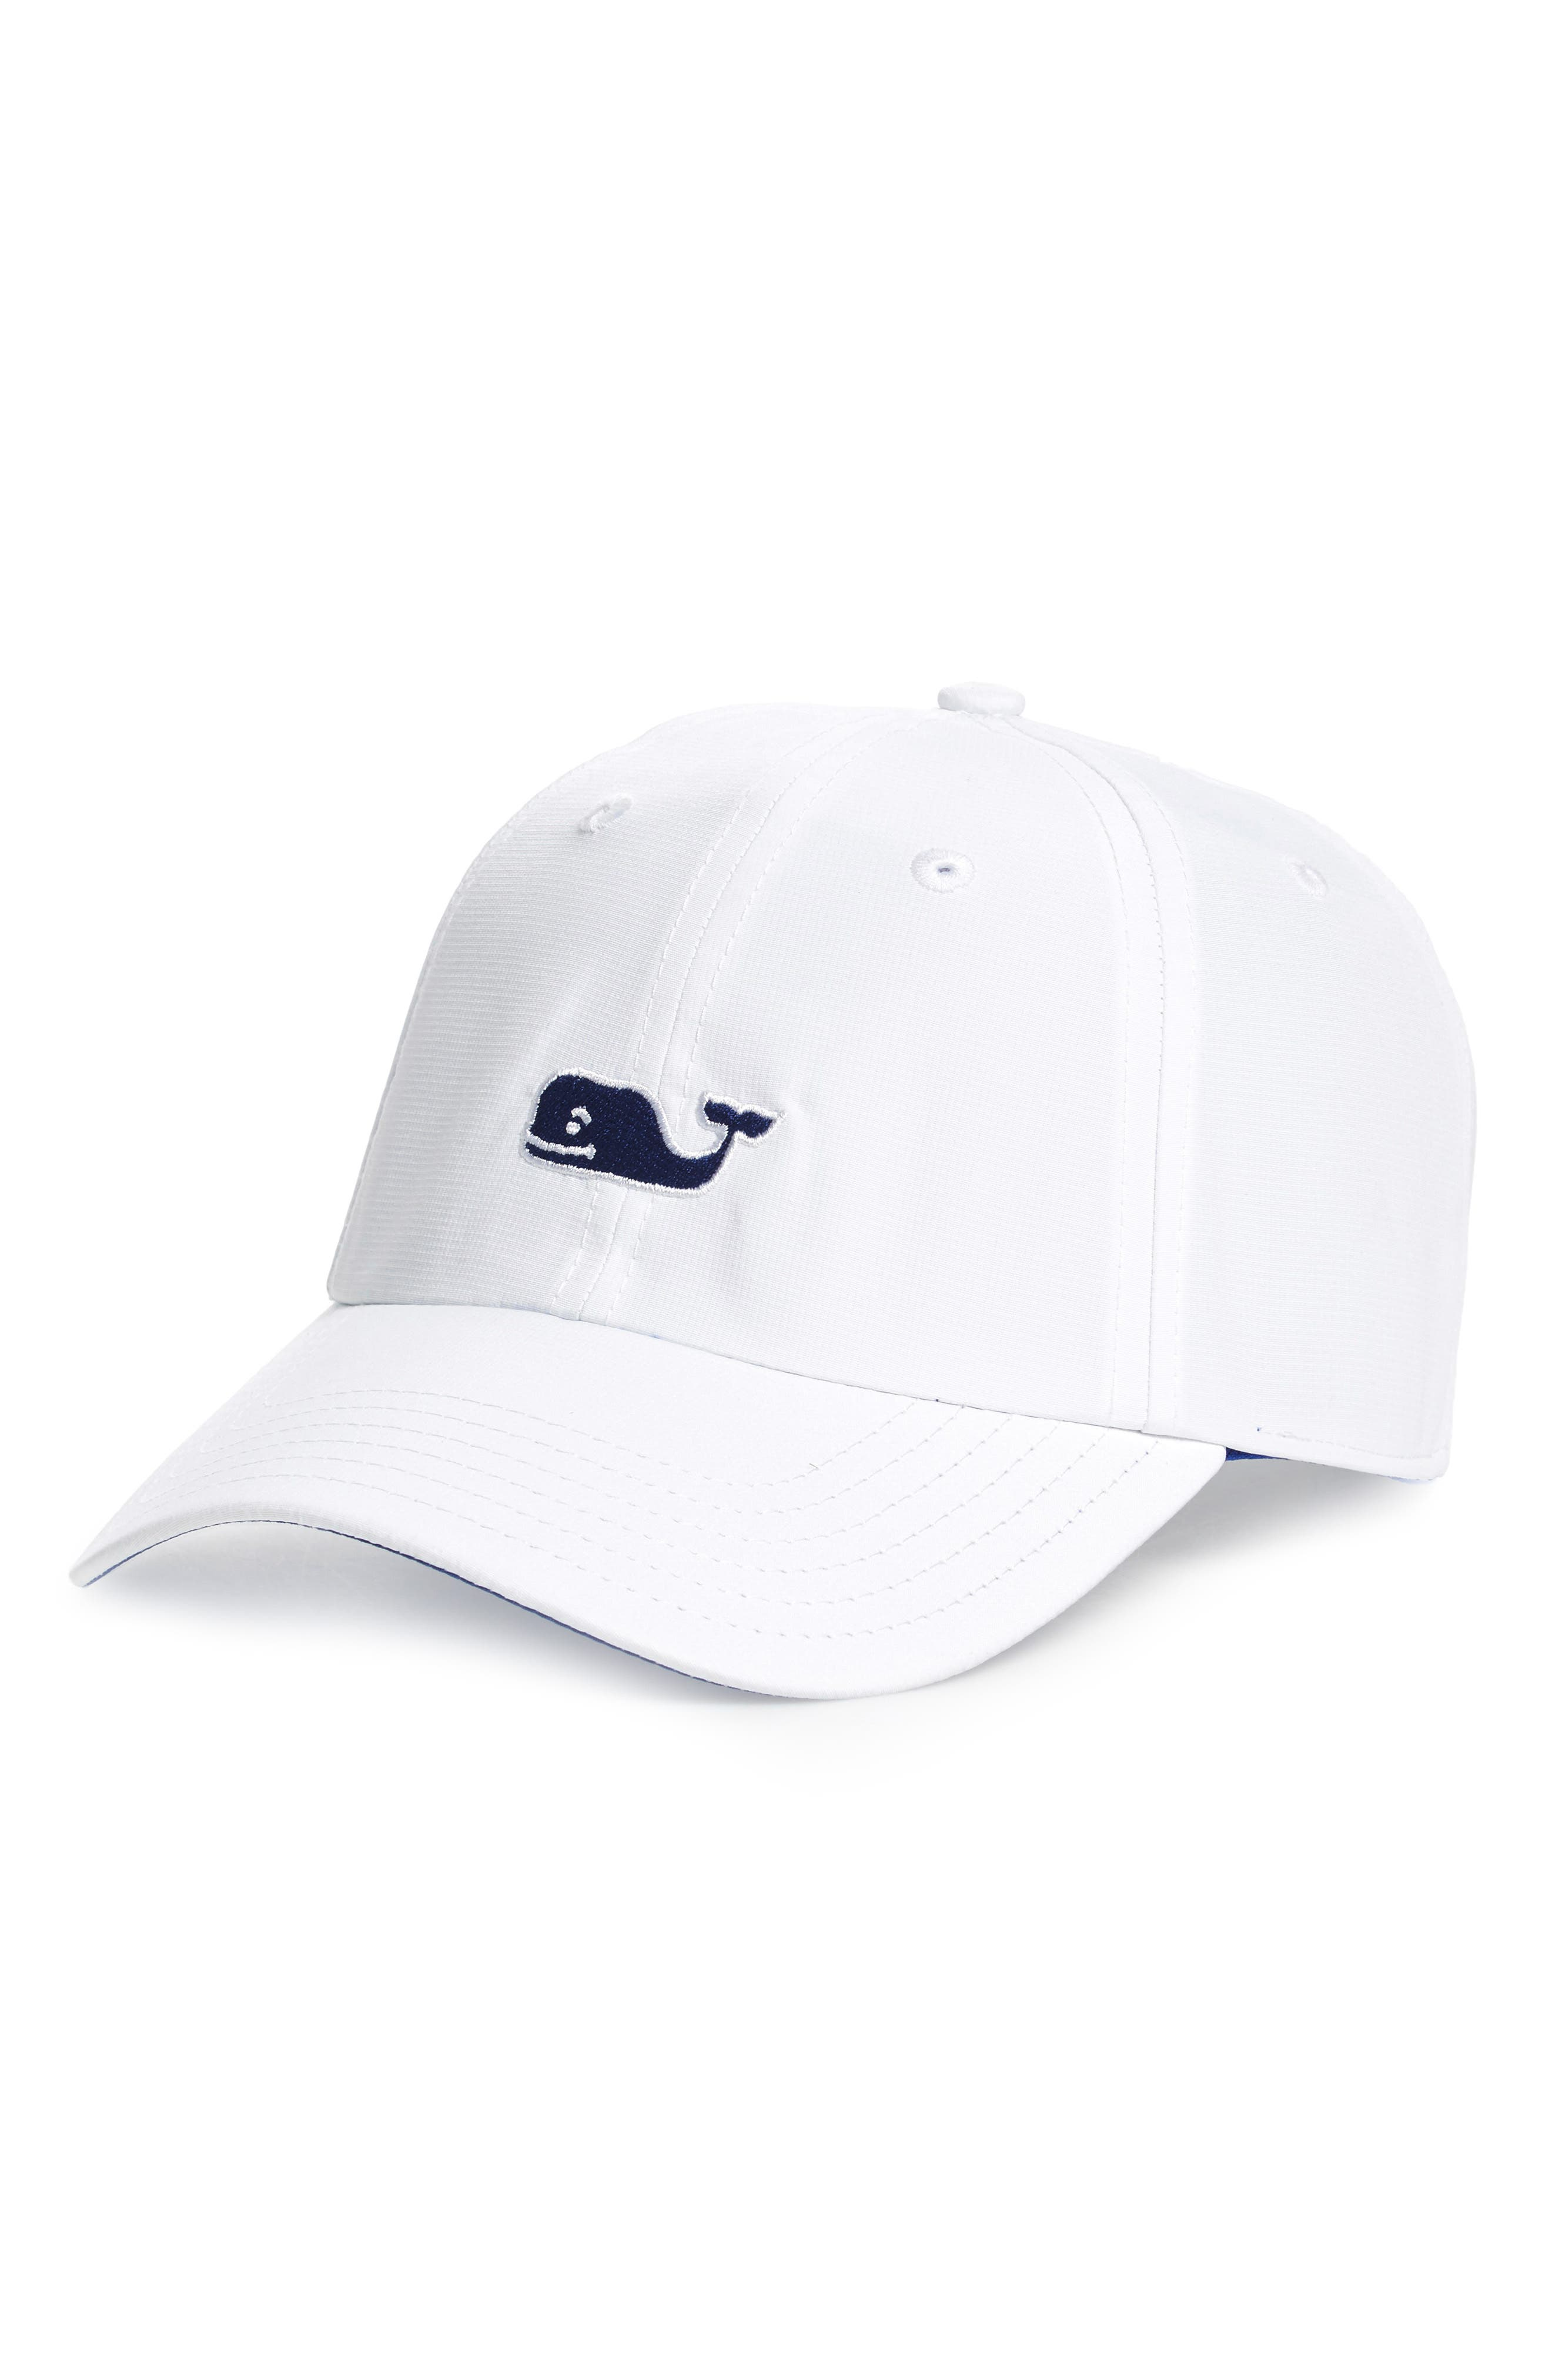 Alternate Image 1 Selected - vineyard vines Large Whale Performance Baseball Cap